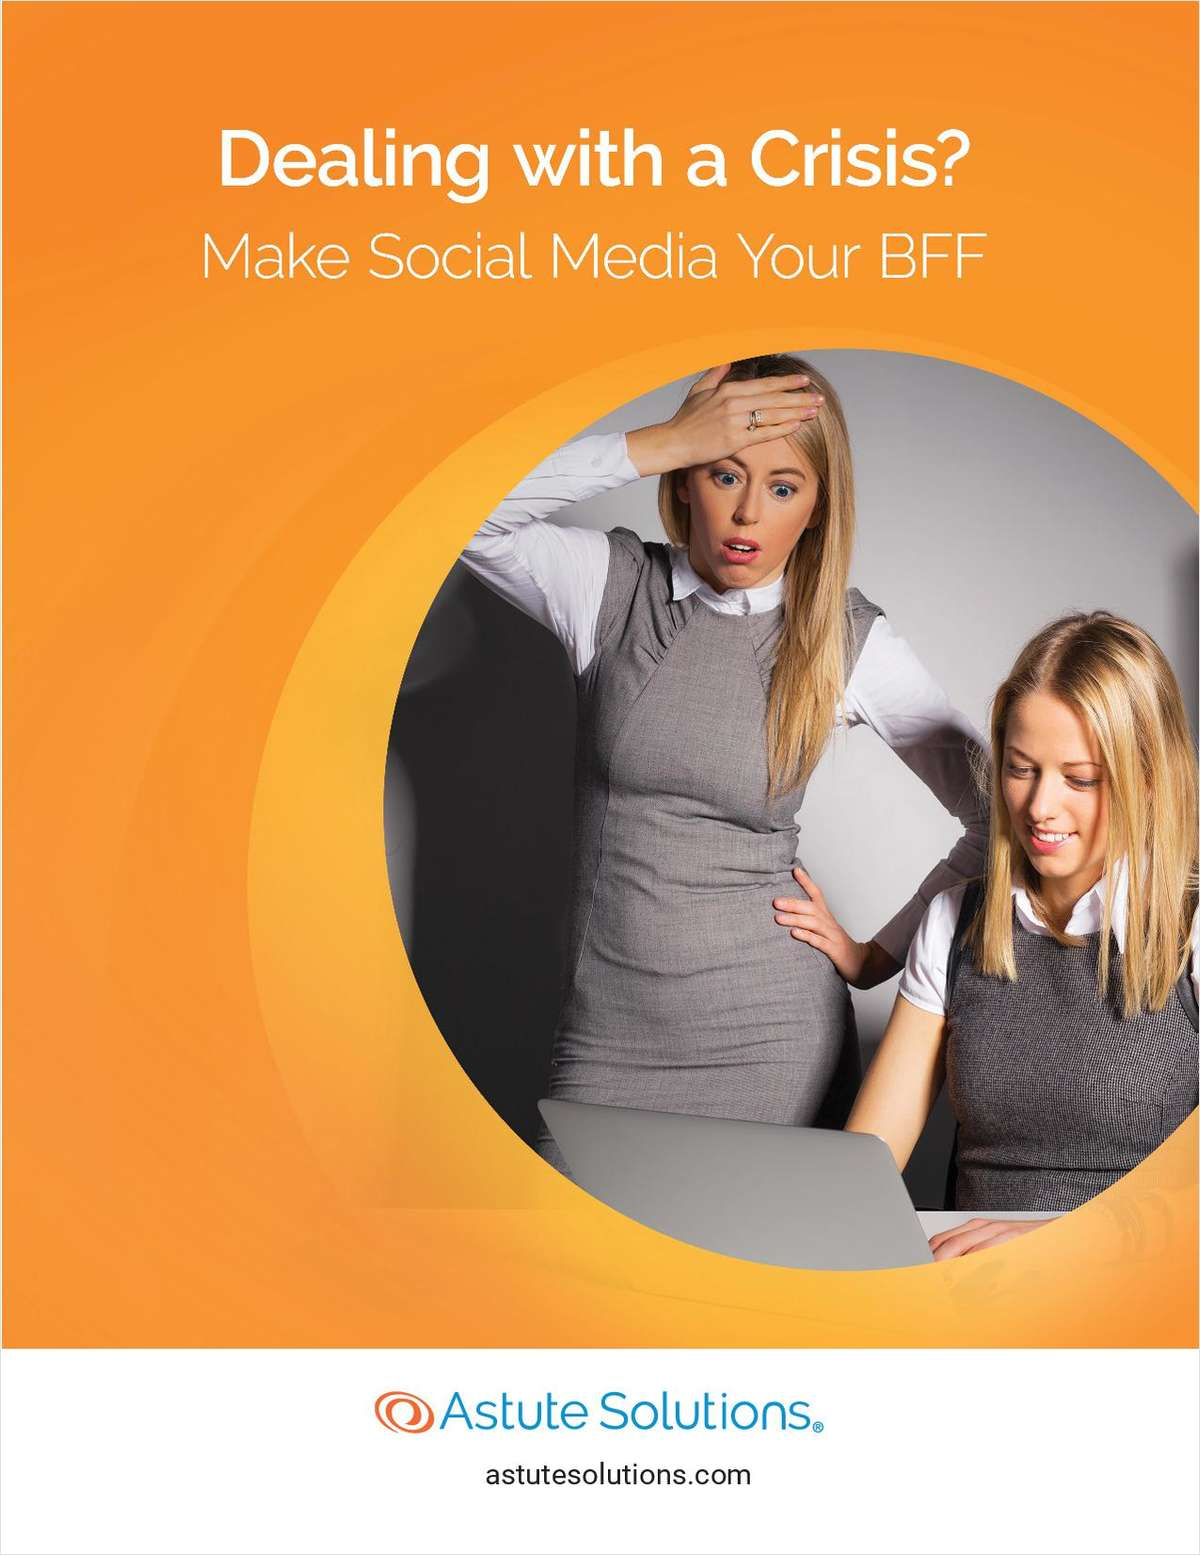 Dealing with a Crisis? Make Social Media Your BFF